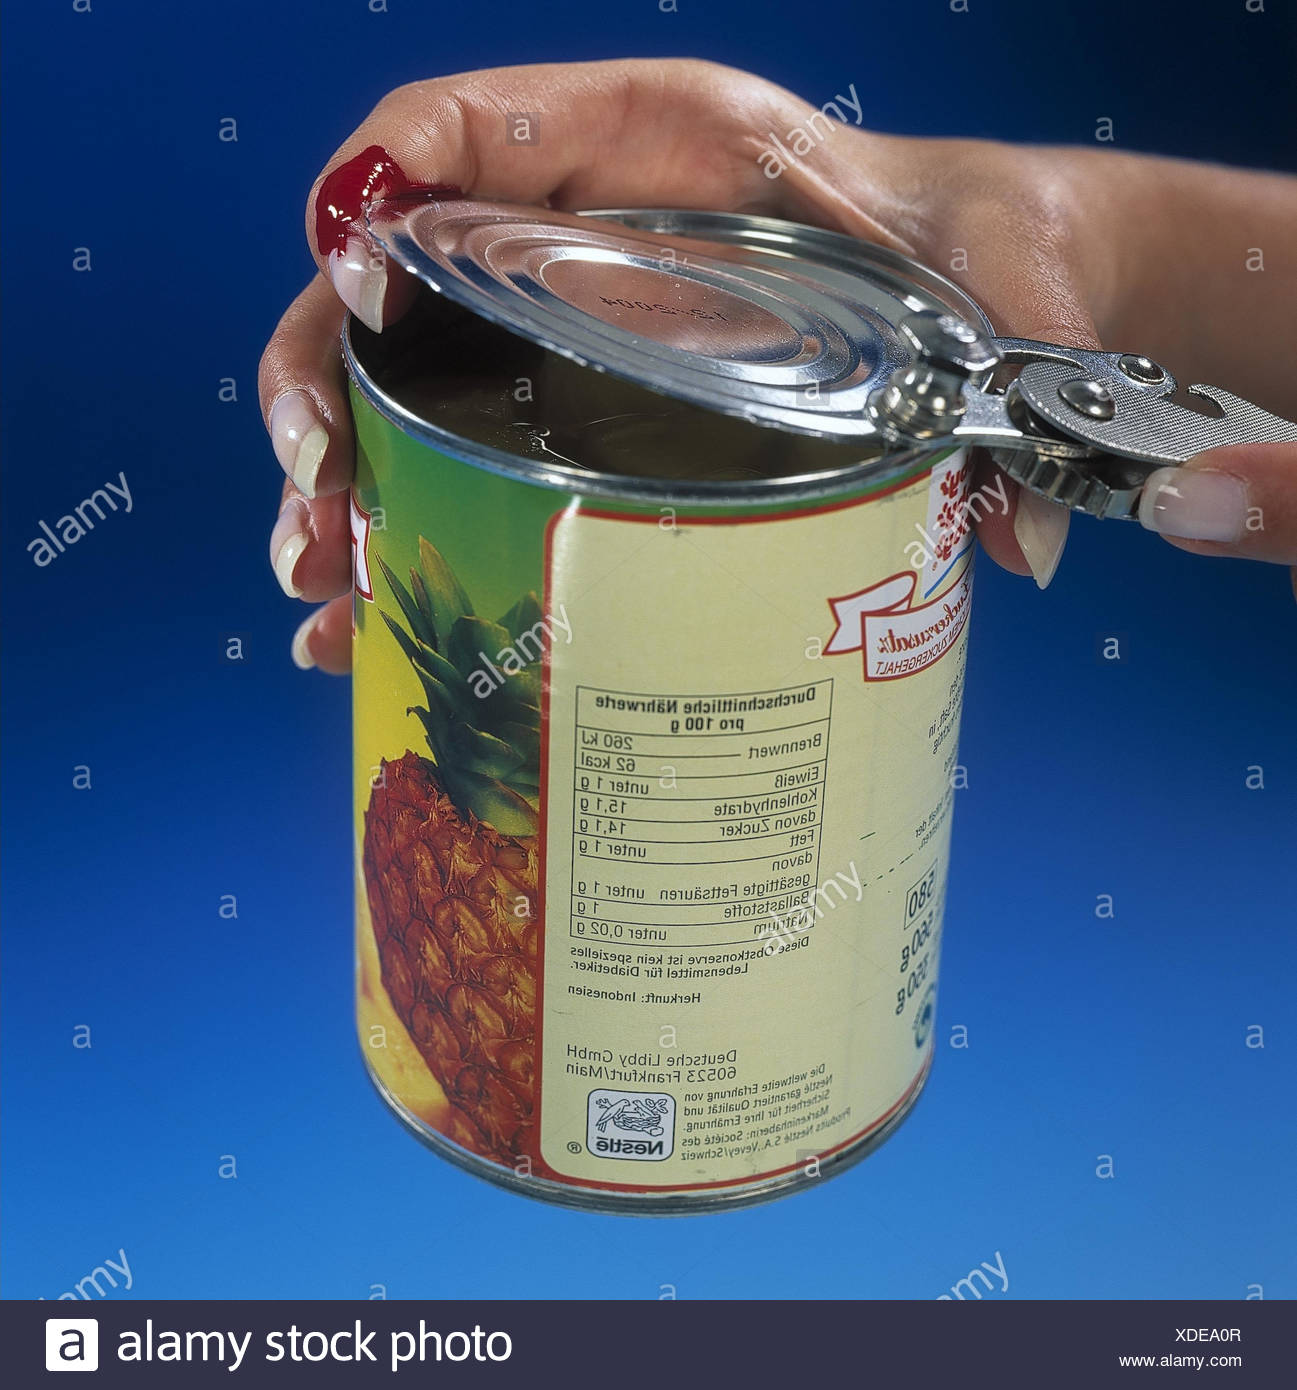 Woman, detail, hands, canned food tin, open, injury, studio, women's hands, tin, canned food, pineapple, fruit, long-lasting, durability, tin, tin, injury danger, danger, dangerously, editing, cut, can opener - Stock Image